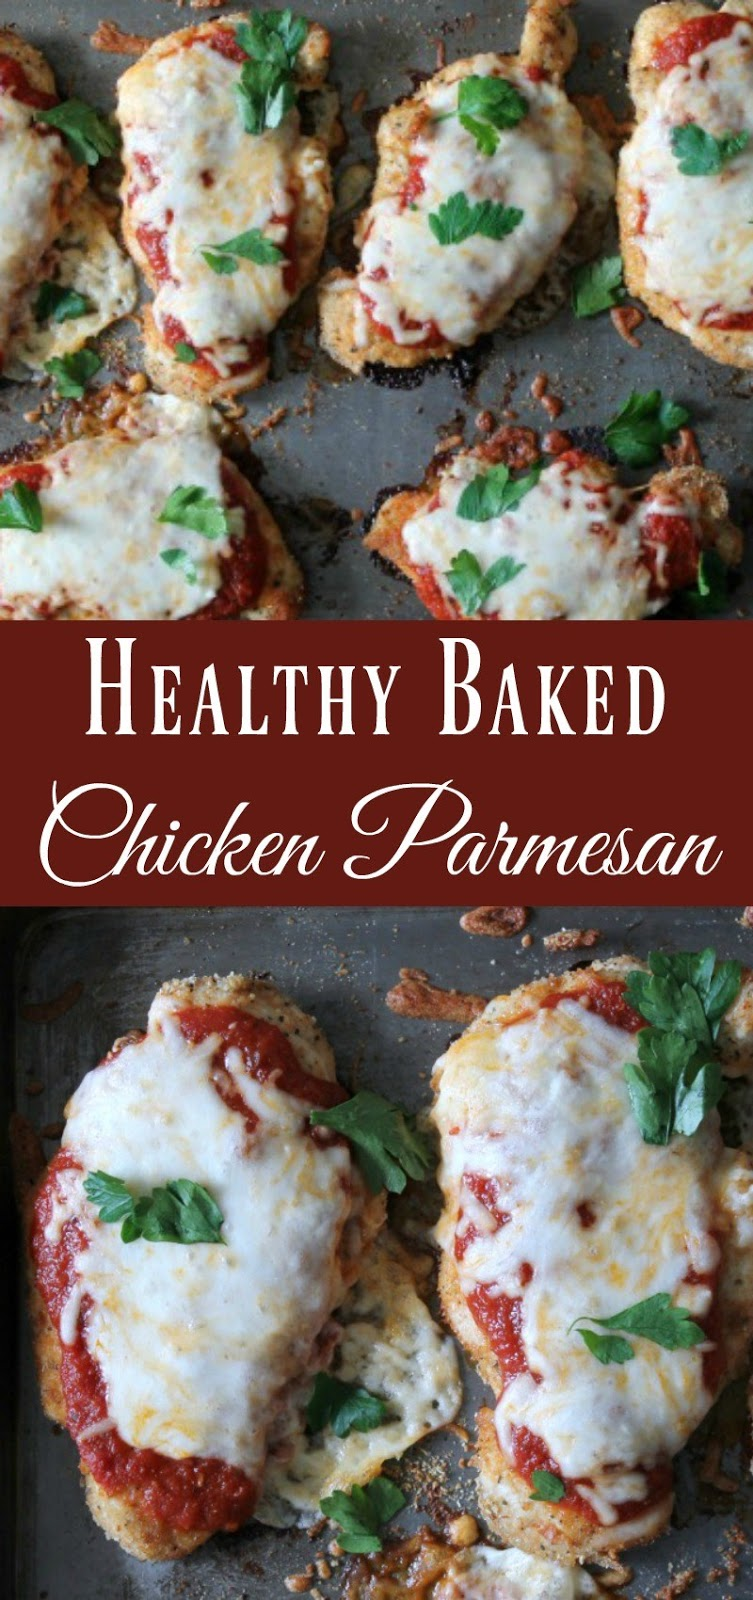 Healthy And Easy Baked Chicken Parmesan